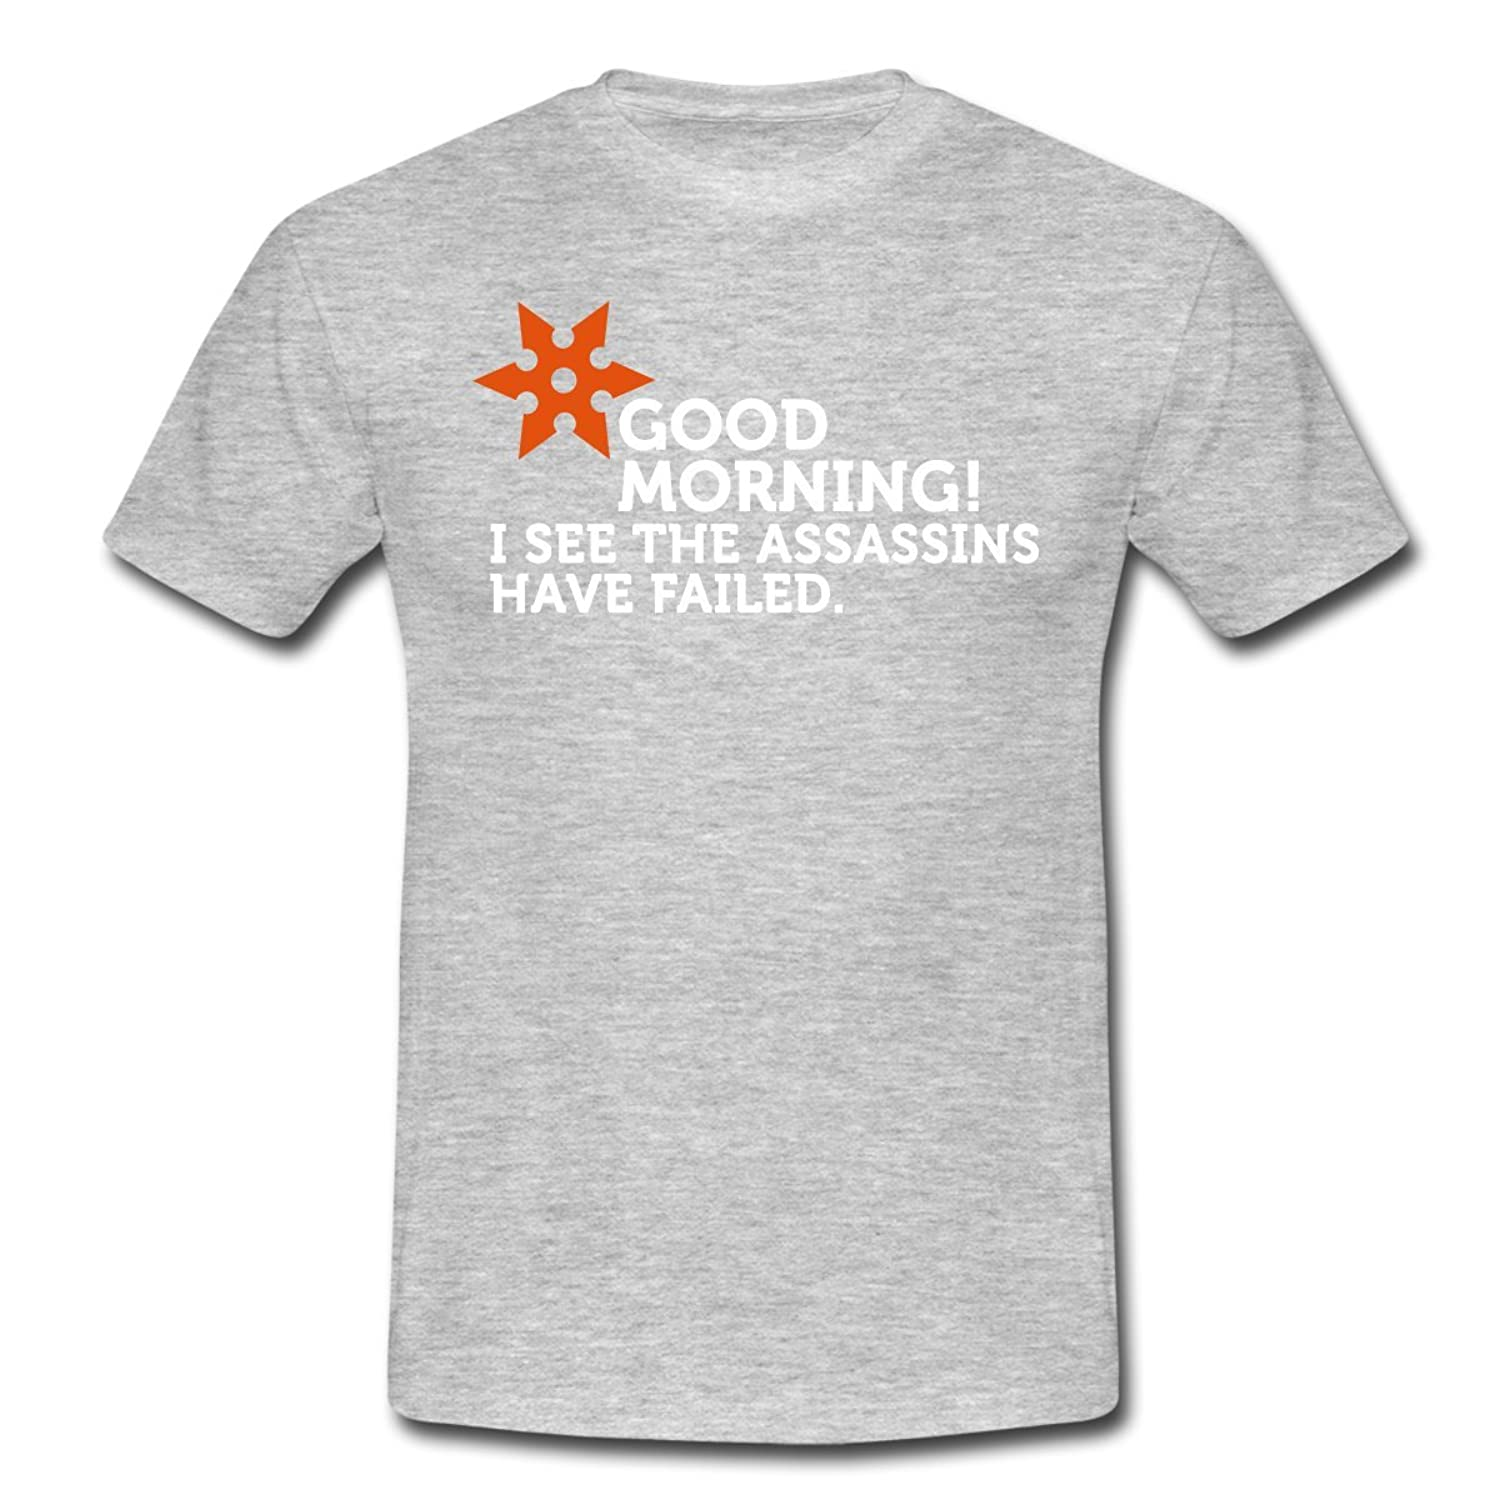 Good Morning Men's T-Shirt by Spreadshirt??